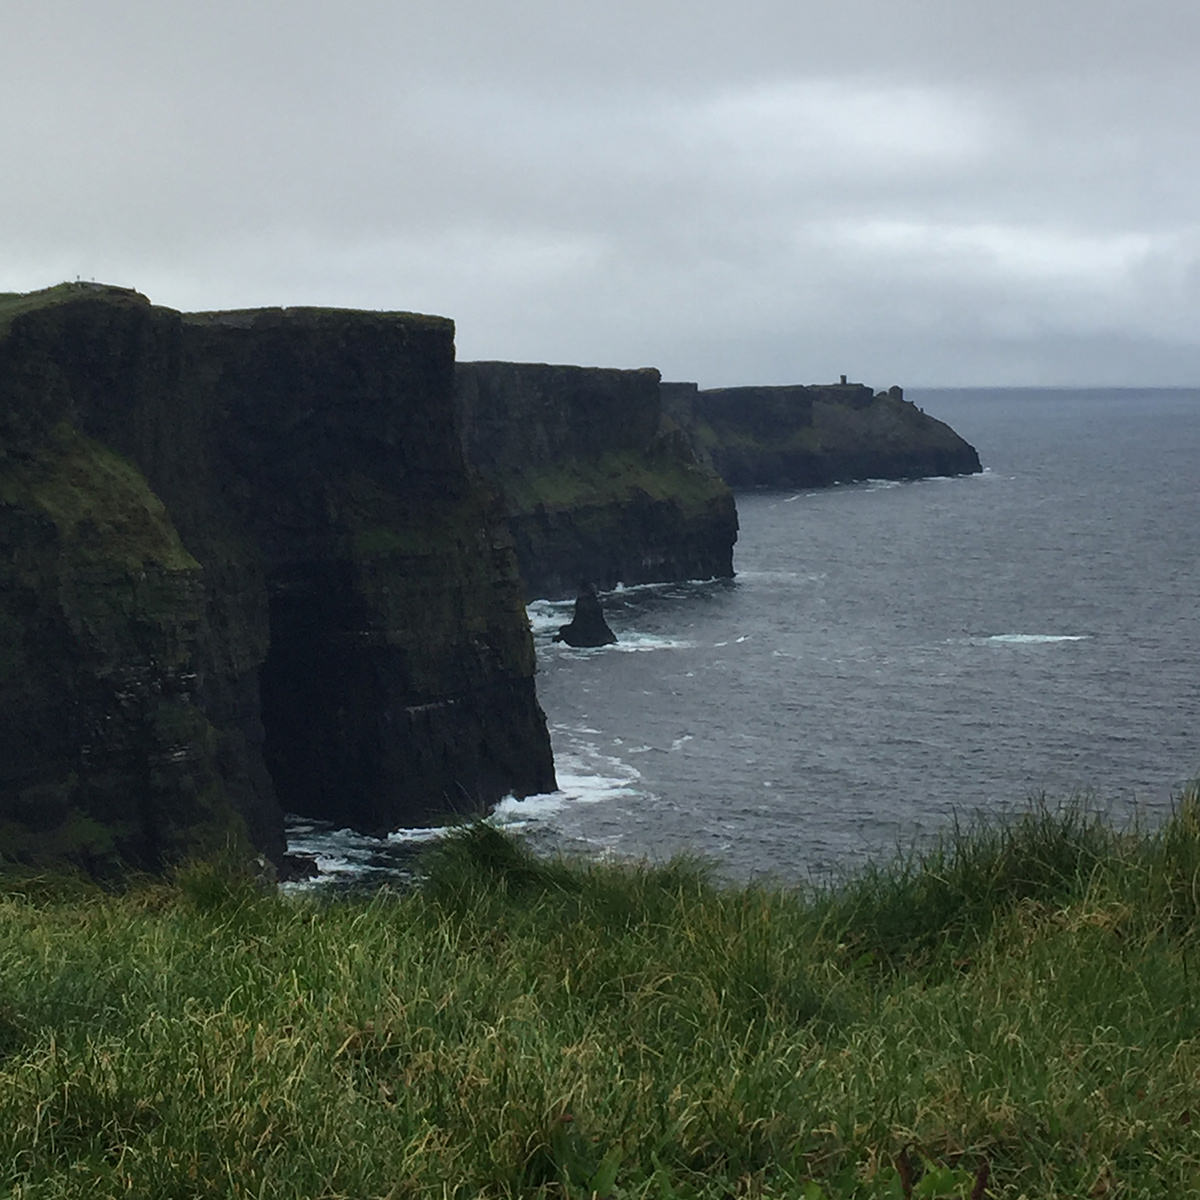 The Cliffs of Moher offered a breathtaking view.